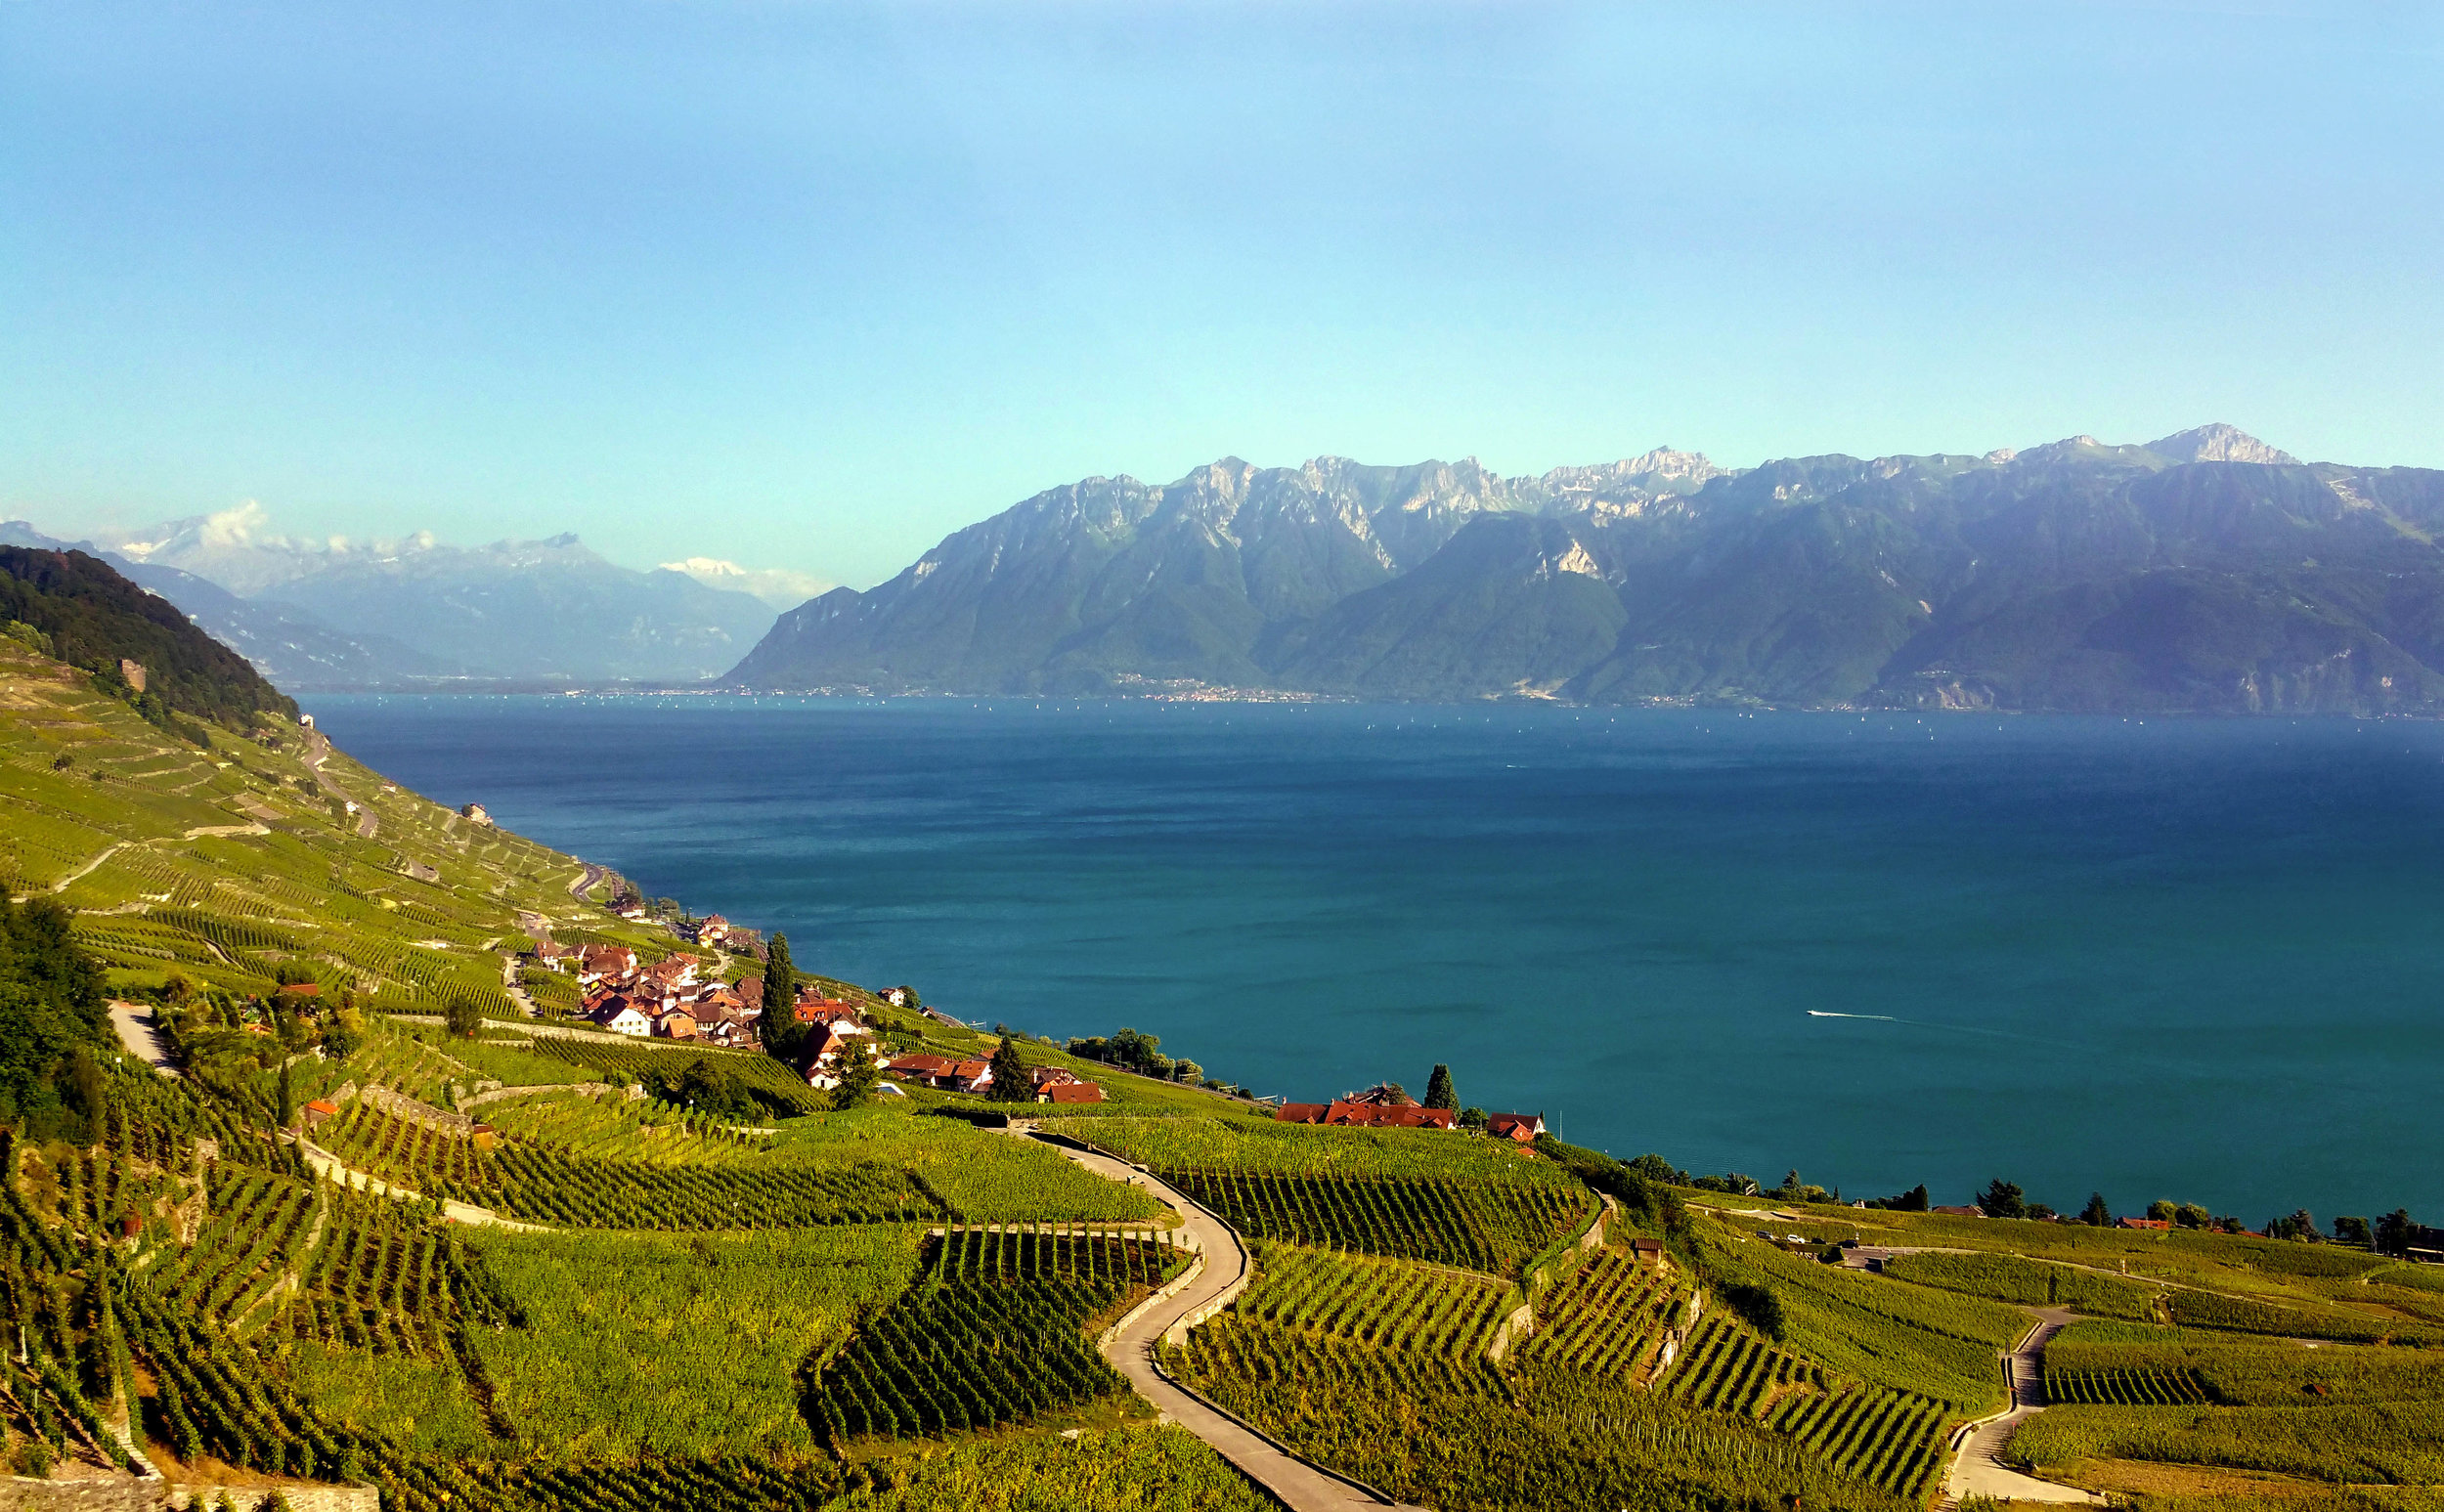 View over the Lavaux vineyards, a UNESCO heritage site, onto Lake Geneva                                                                                                                                                © Joanne DiBona